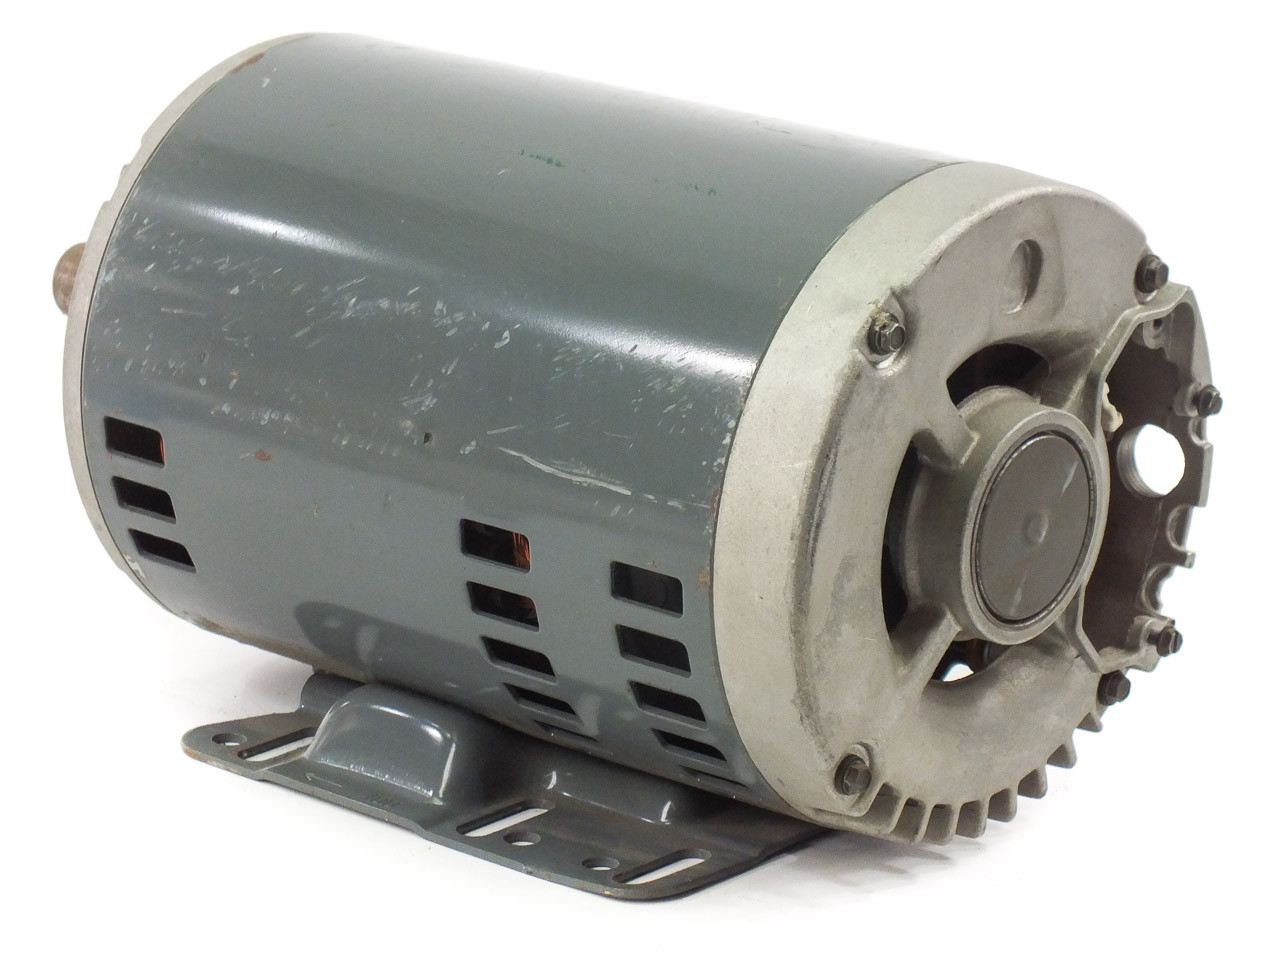 5915A5 Emerson P63TYDMC-3336 2HP Polyphase Electric Motor 208-460V 3-Phase  1725 RPM | Wiring LibraryWiring Library